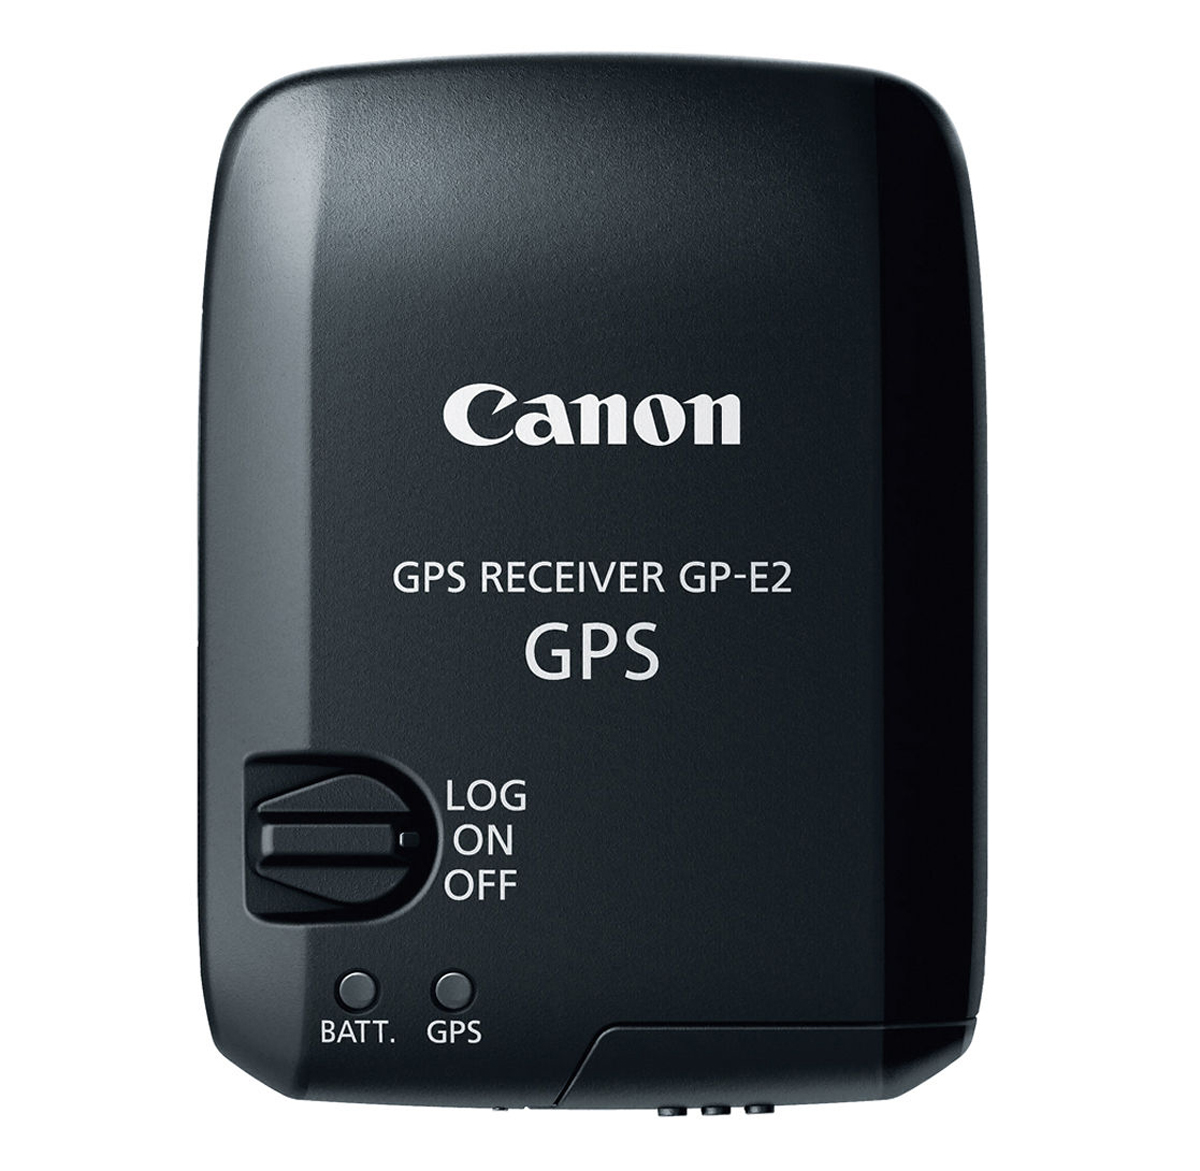 Click here for GP-E2 GPS Receiver prices